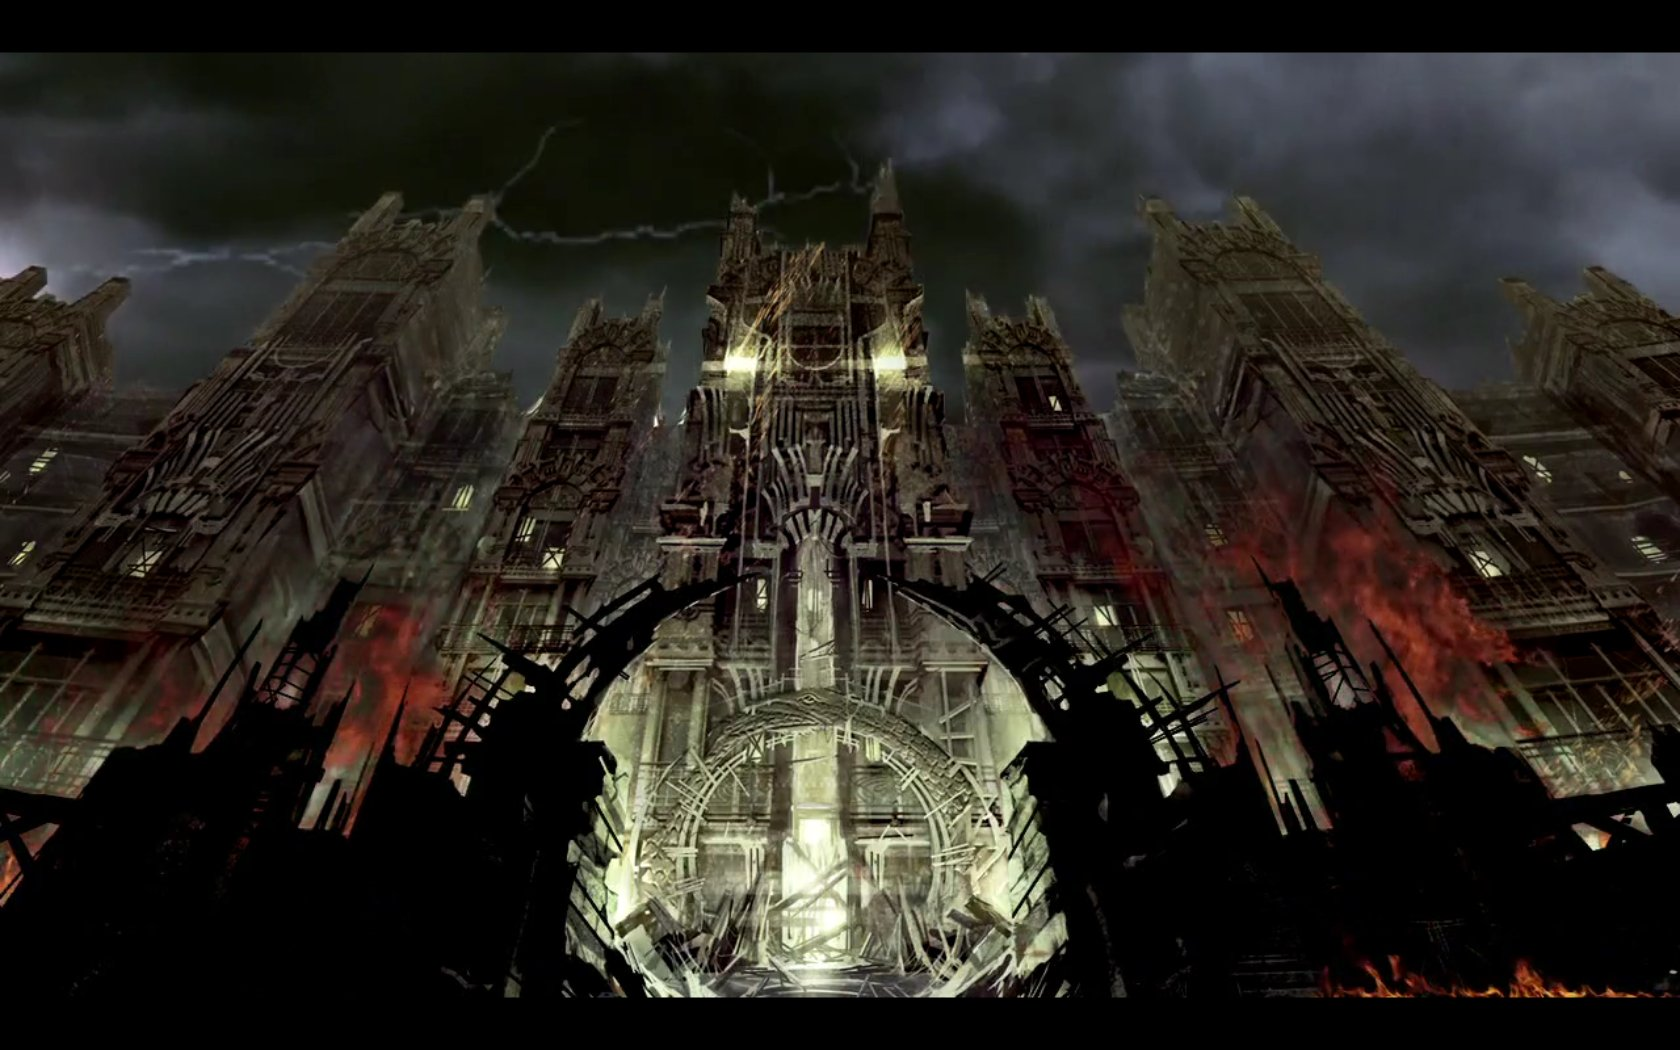 49 disturbed hd wallpapers background images wallpaper abyss hd wallpaper background image id88256 voltagebd Gallery